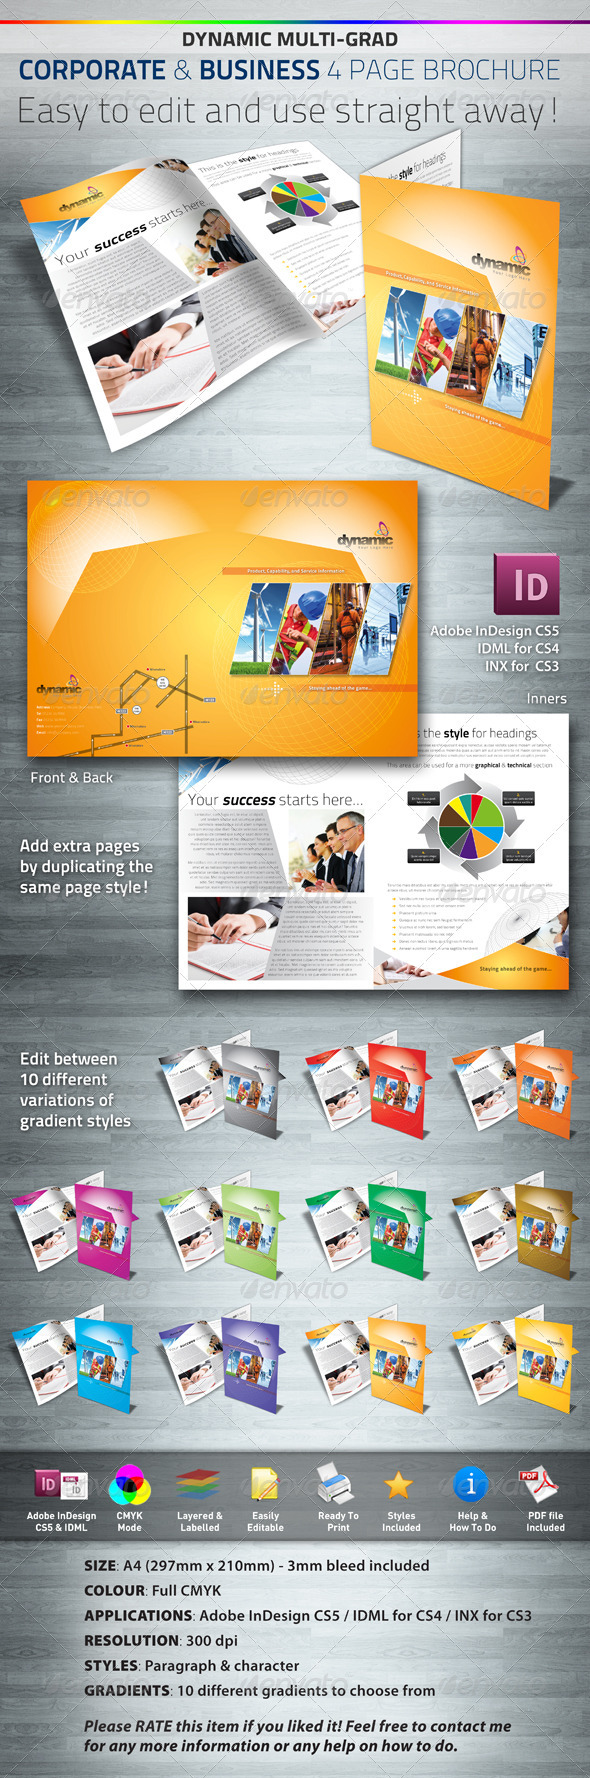 GraphicRiver Dynamic Corporate & Business 4 Page Brochure 256330